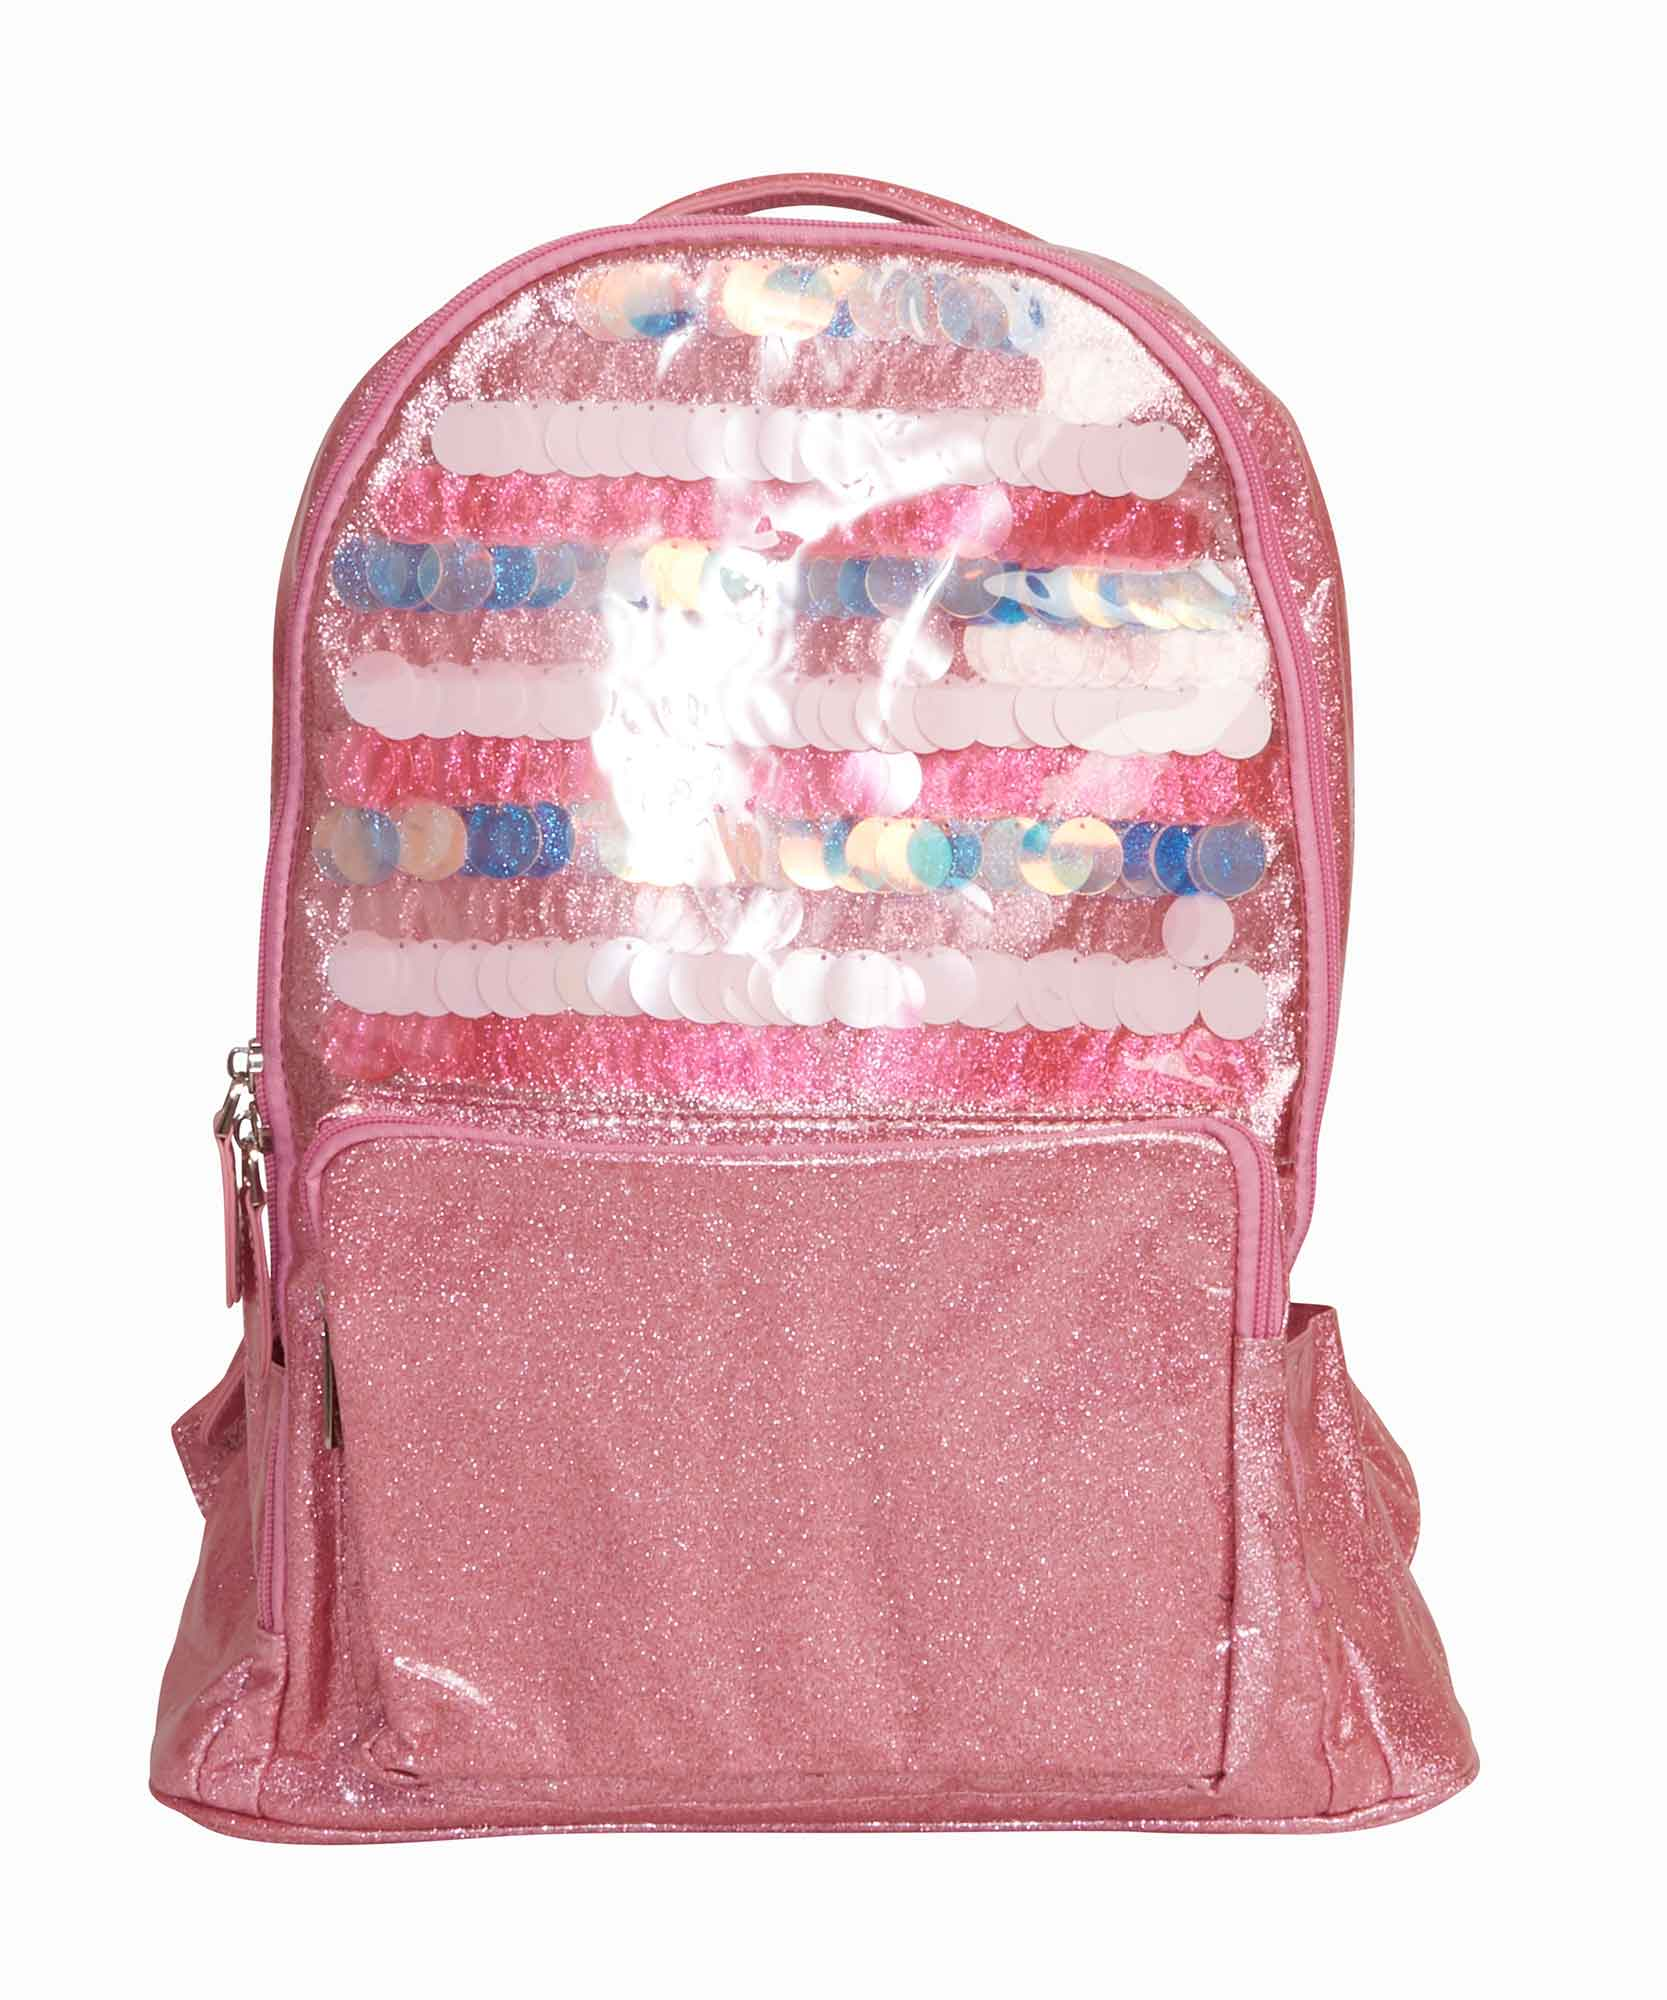 Paillette Pink Backpack